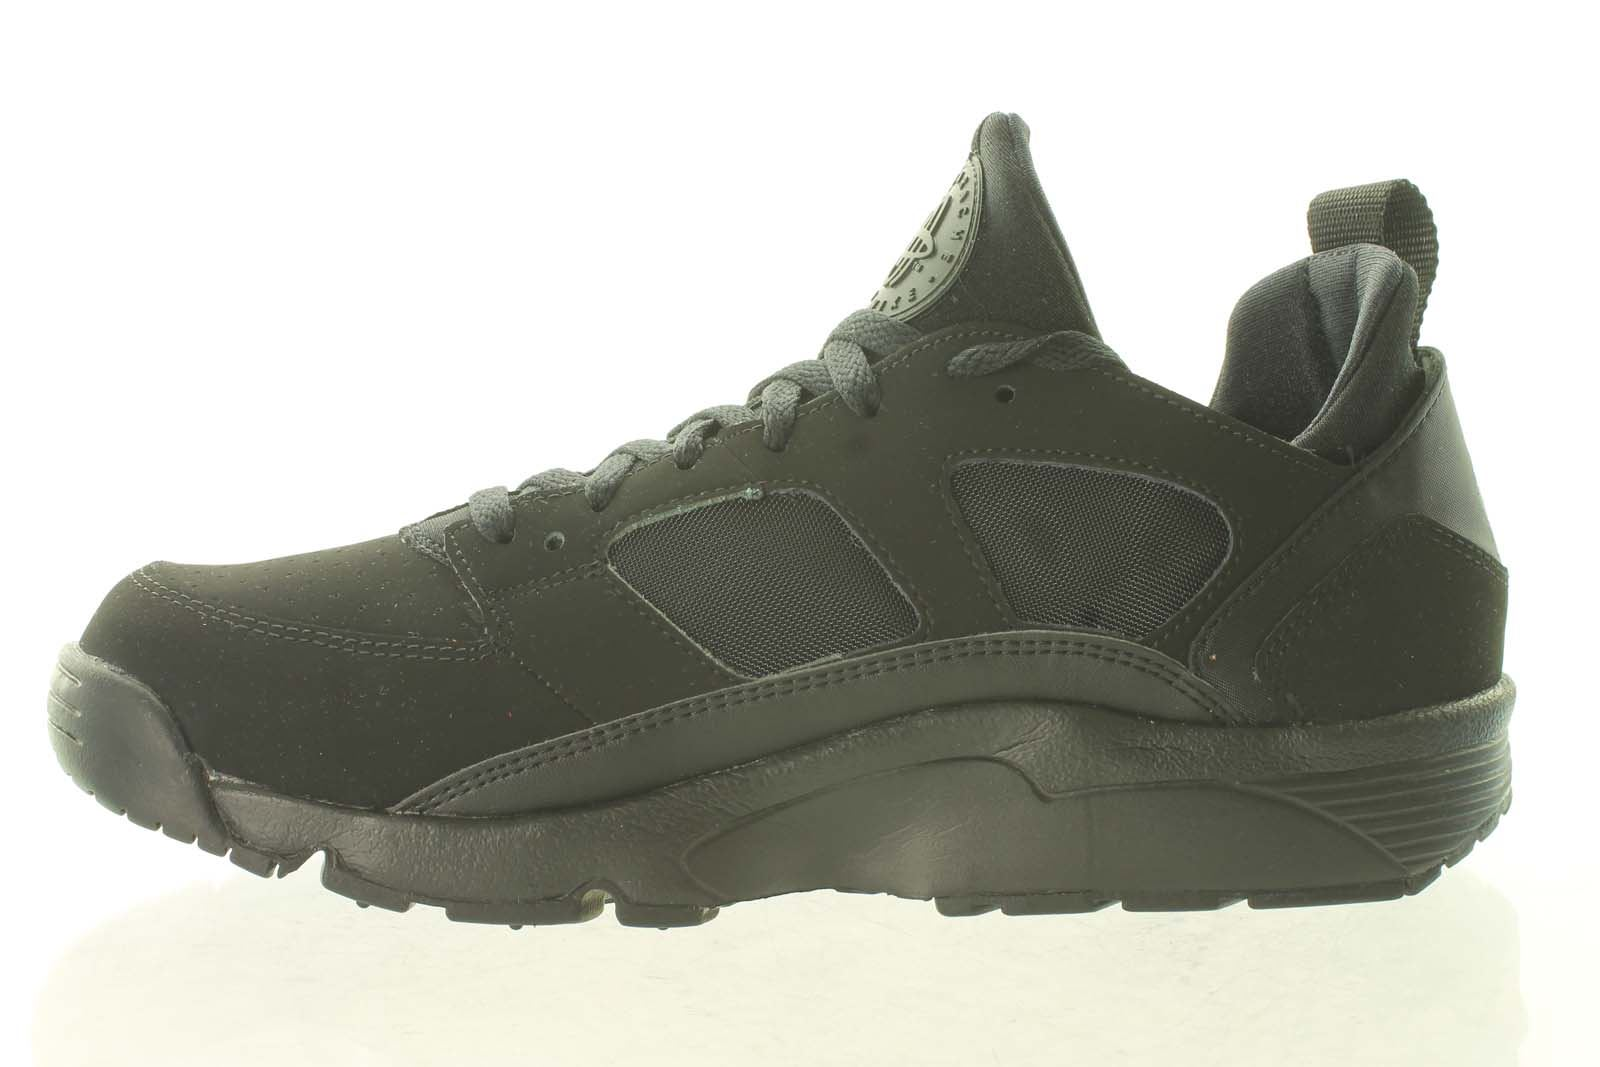 Nike-Air-Trainer-Huarache-Low-749447-001-Mens-Trainers-UK-SIZE-7-ONLY